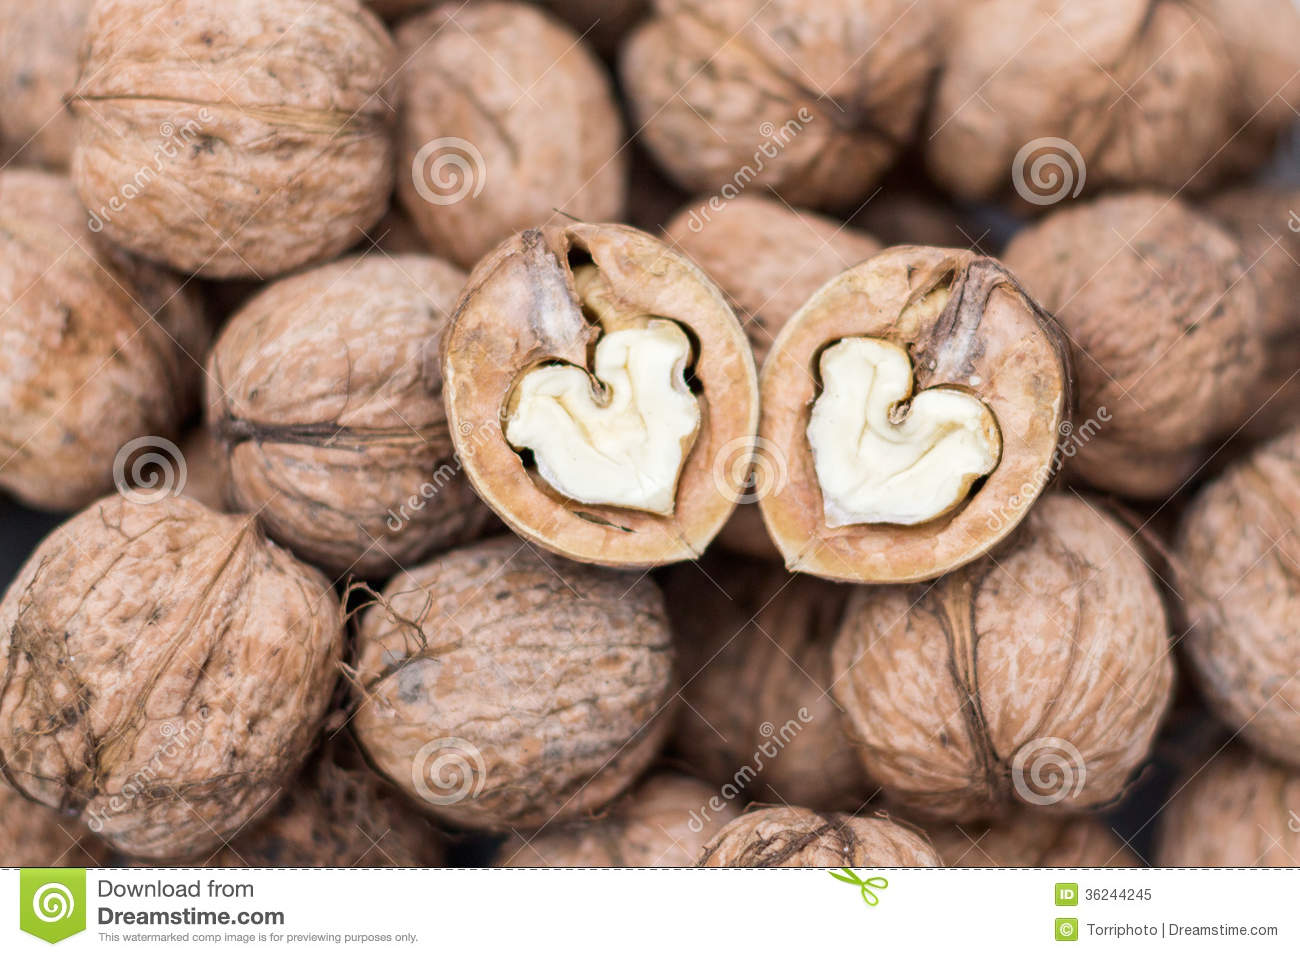 Two walnuts hearts